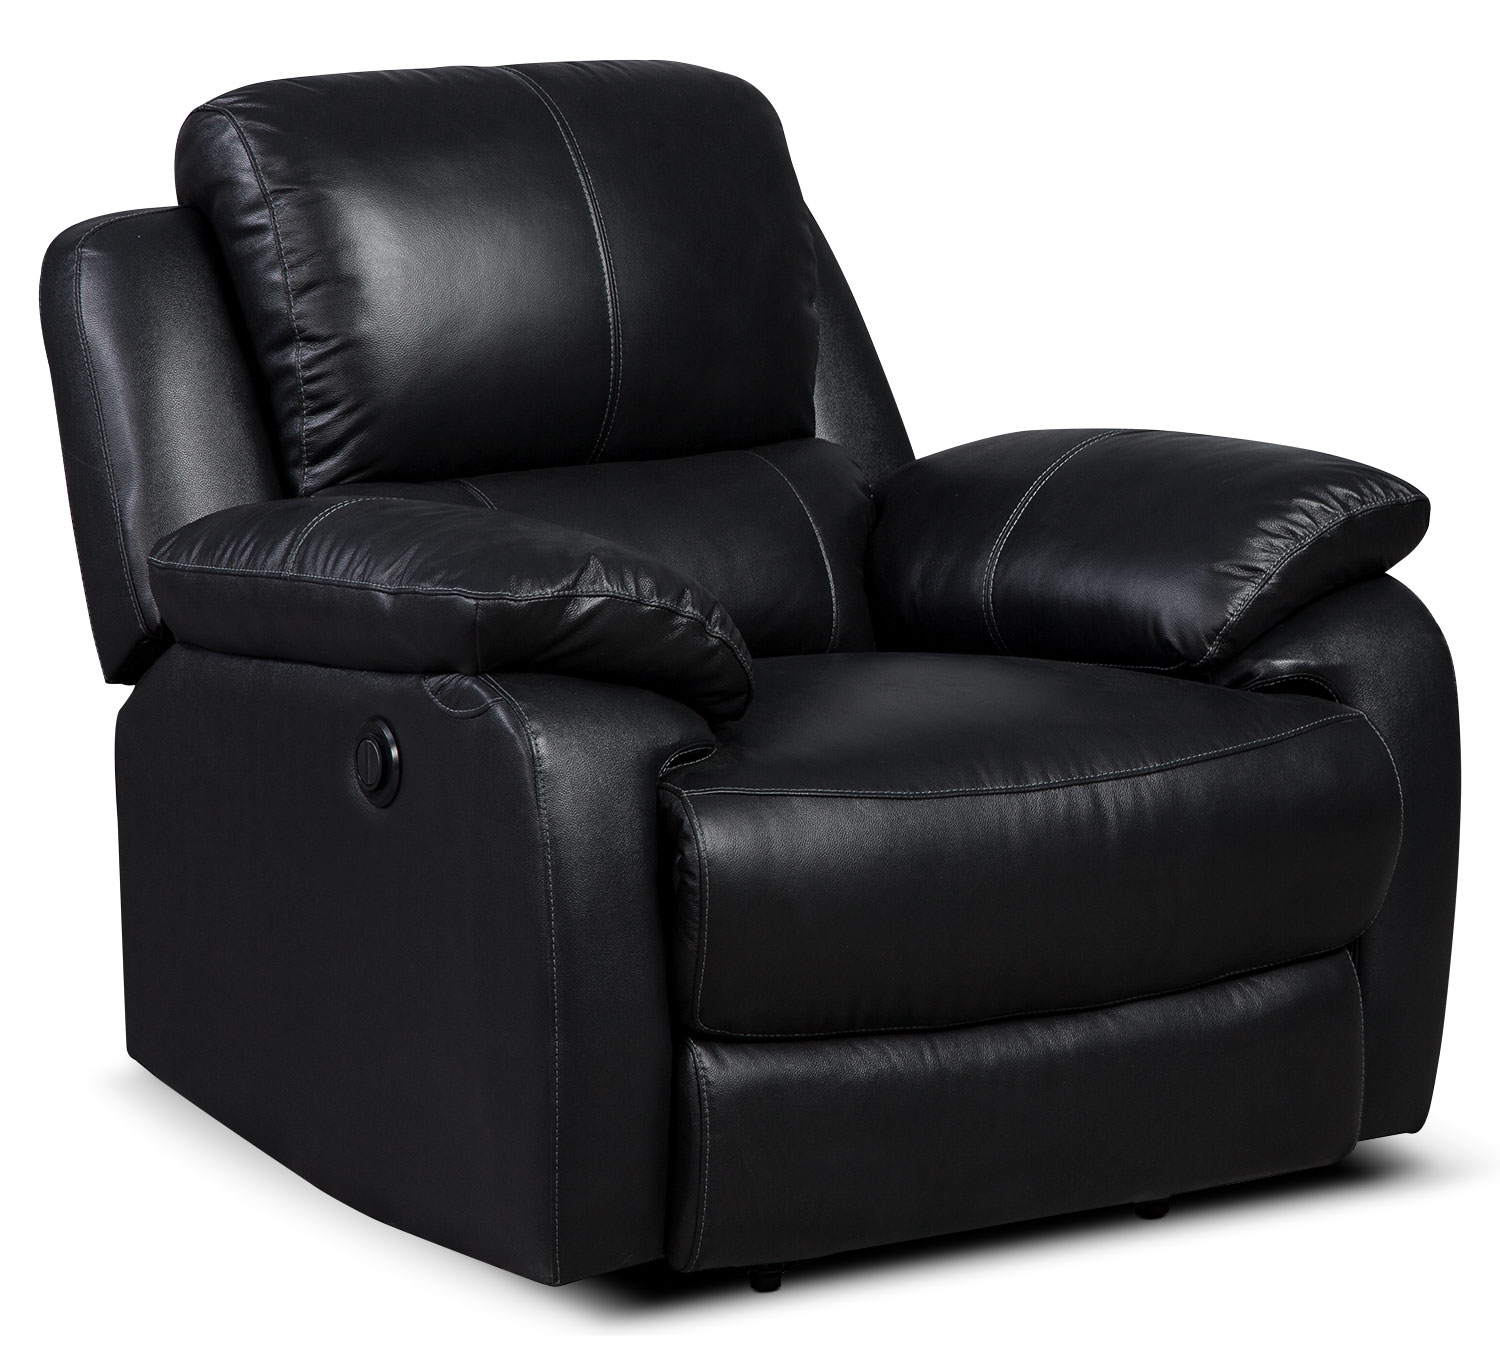 Cairo Genuine Leather Power Reclining Chair – Black